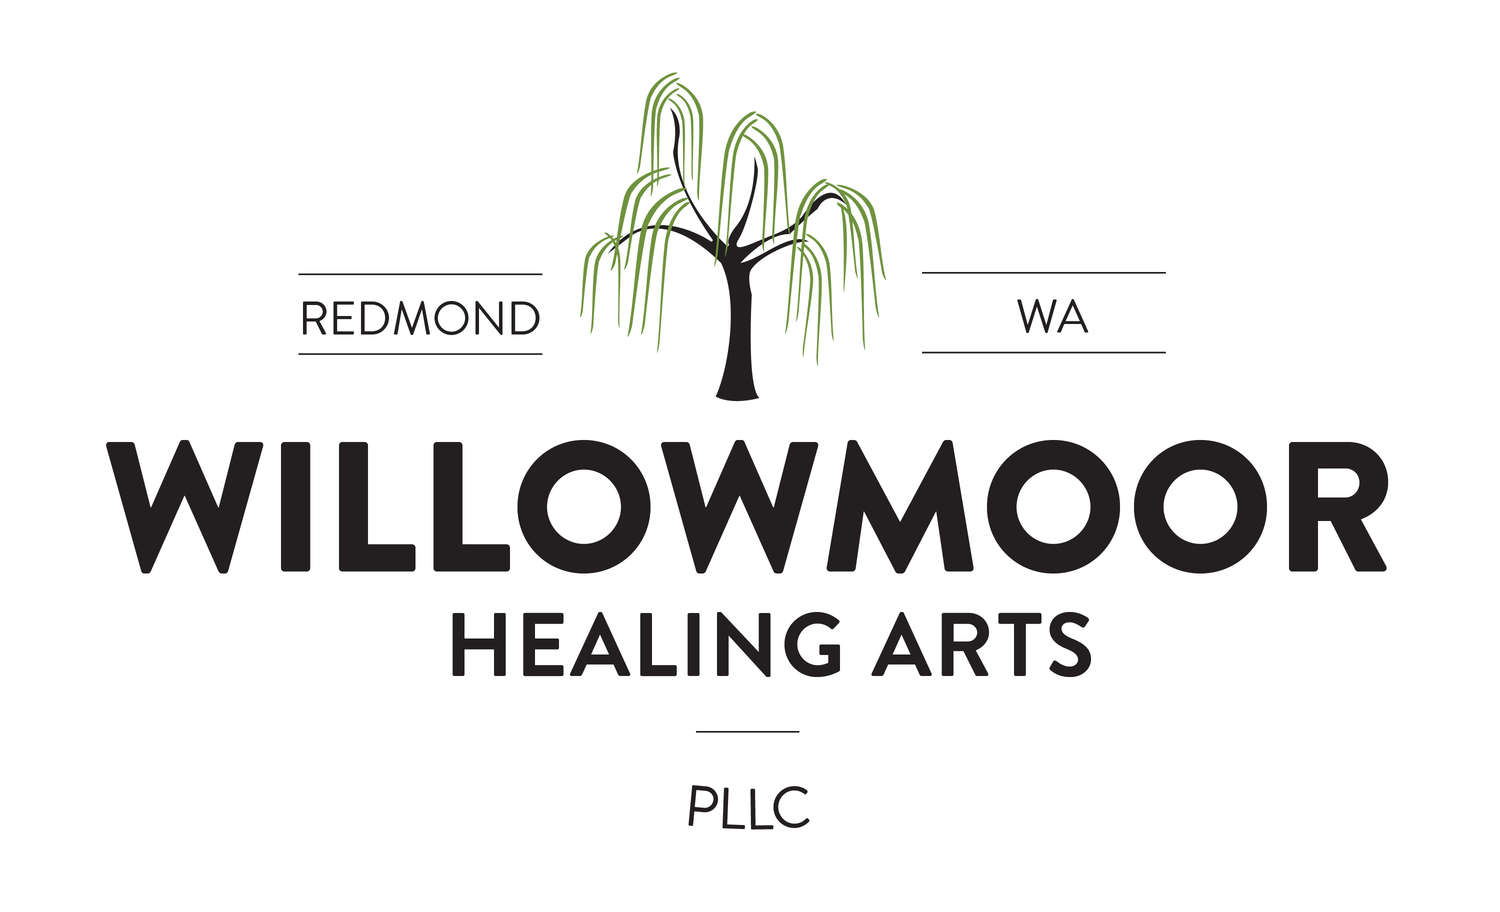 Willowmoor Healing Arts